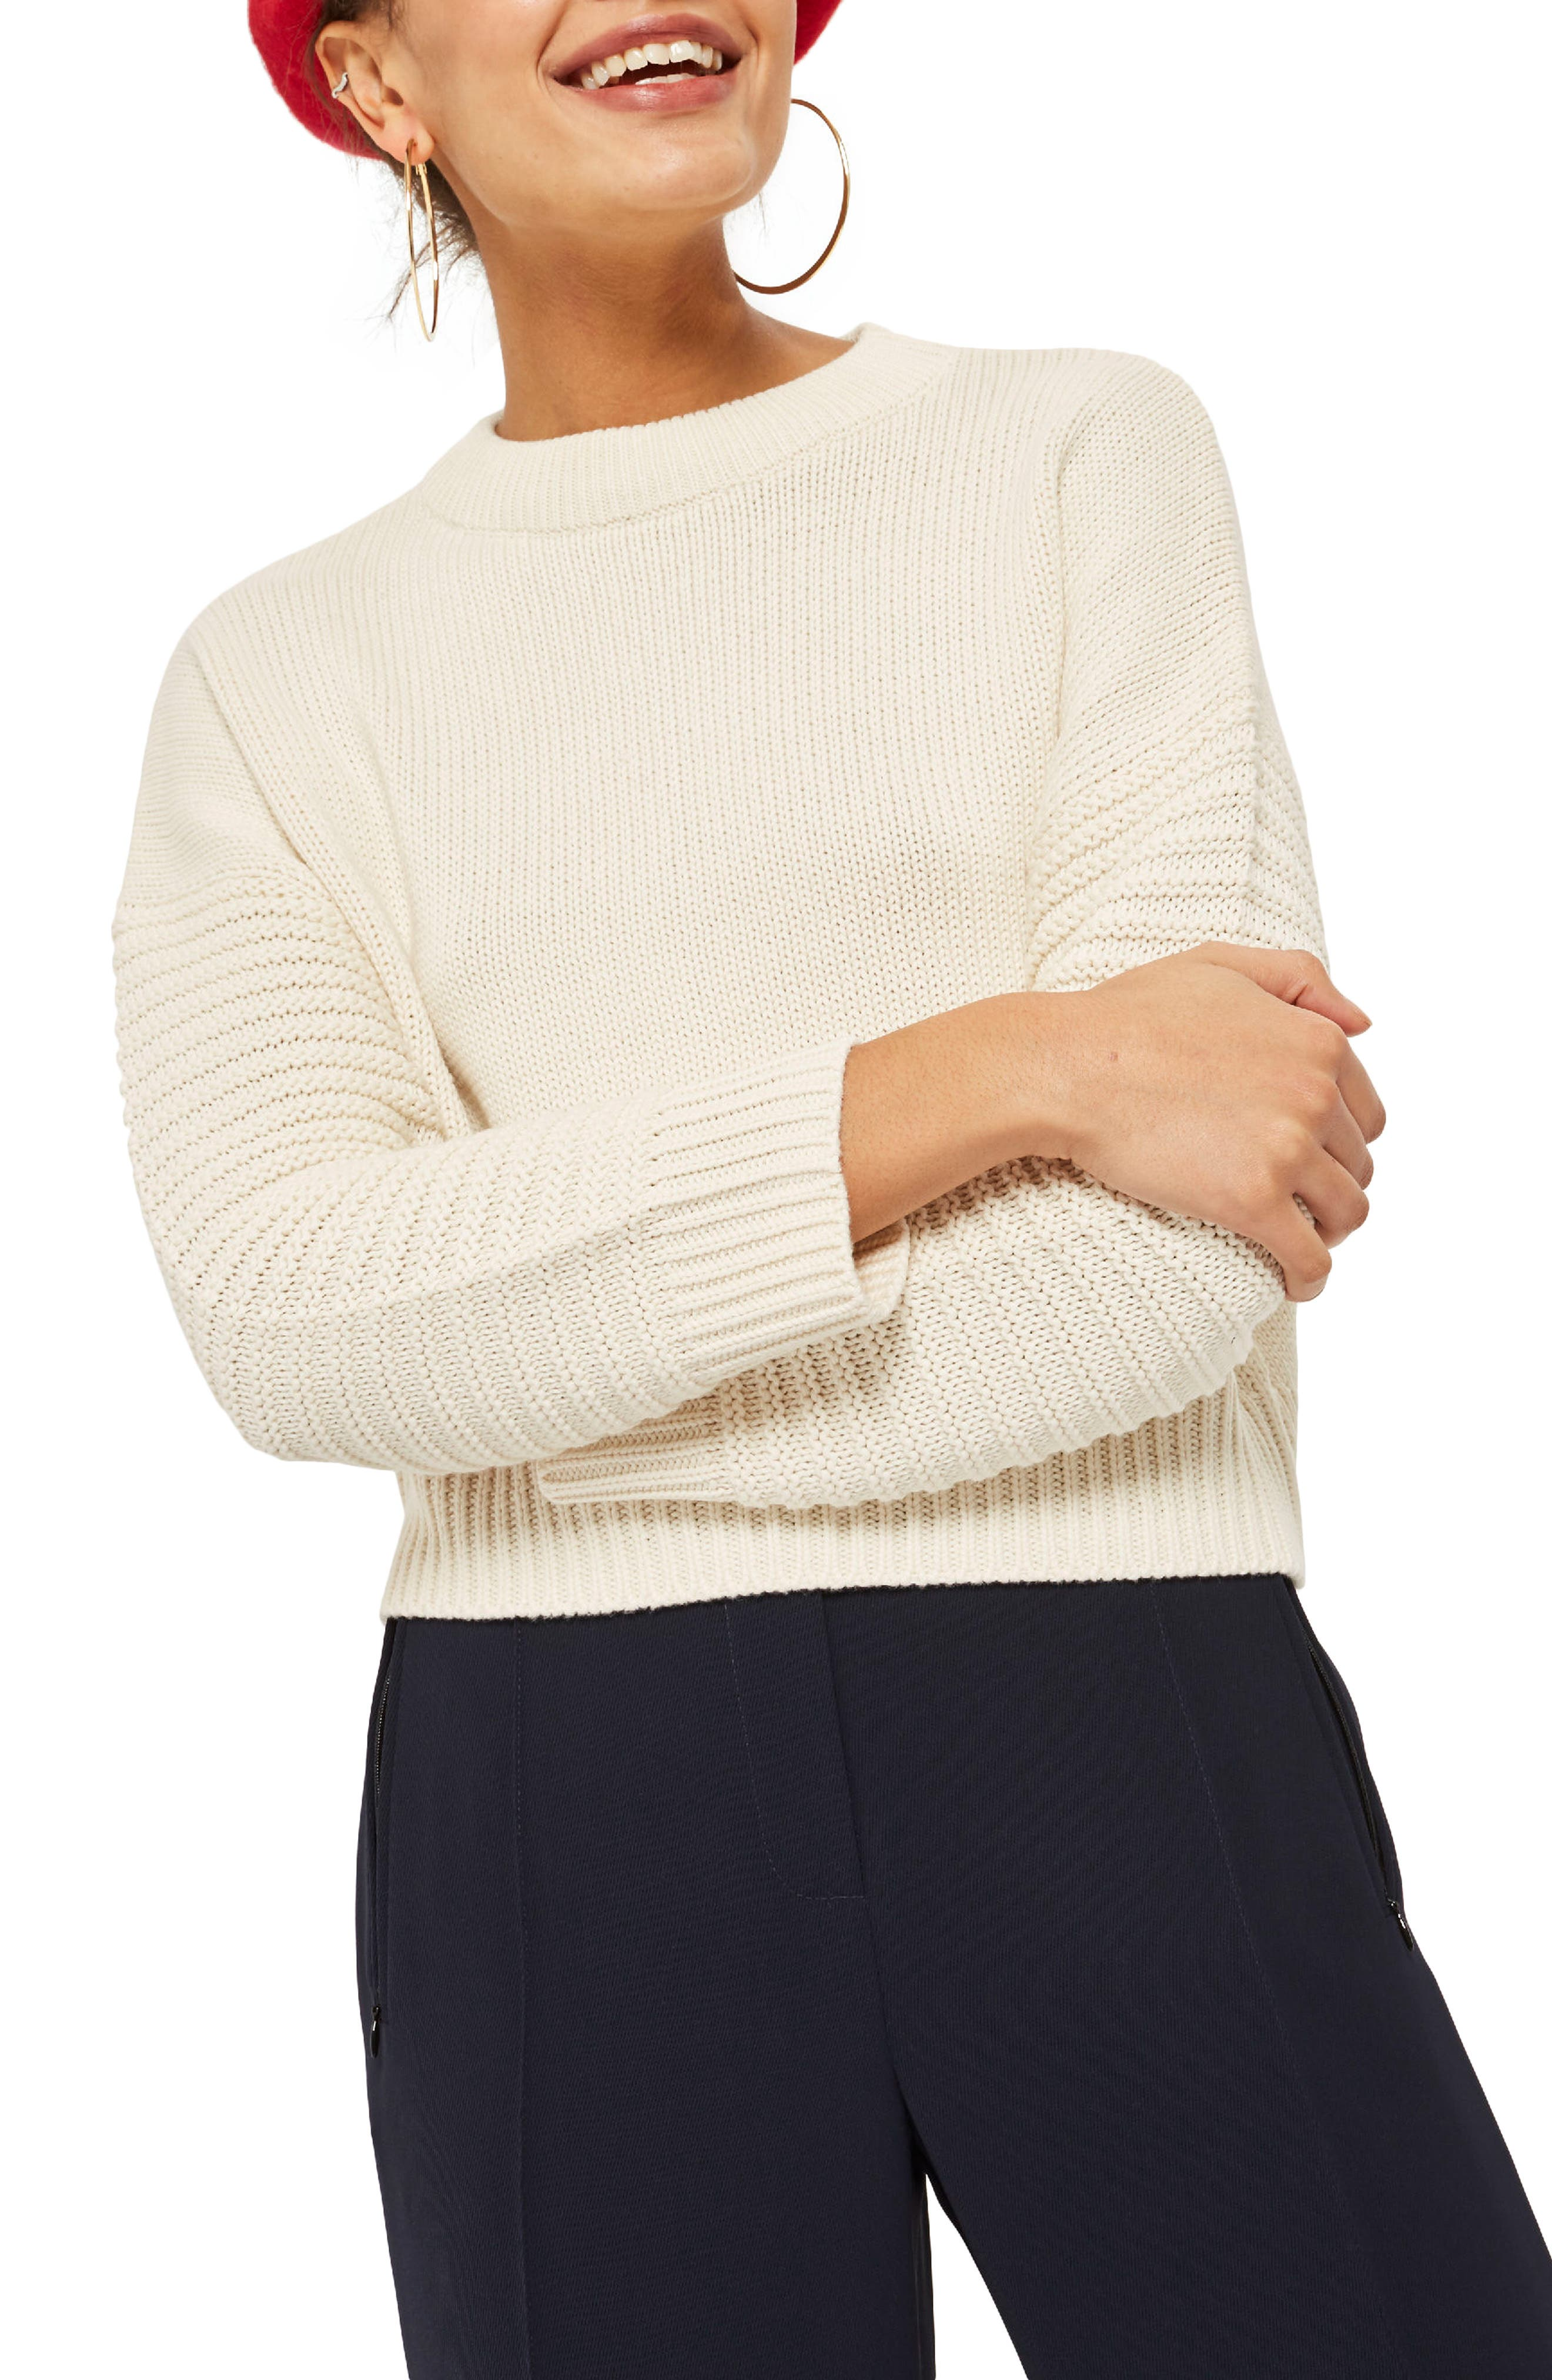 Stitch Sleeve Sweater,                         Main,                         color,